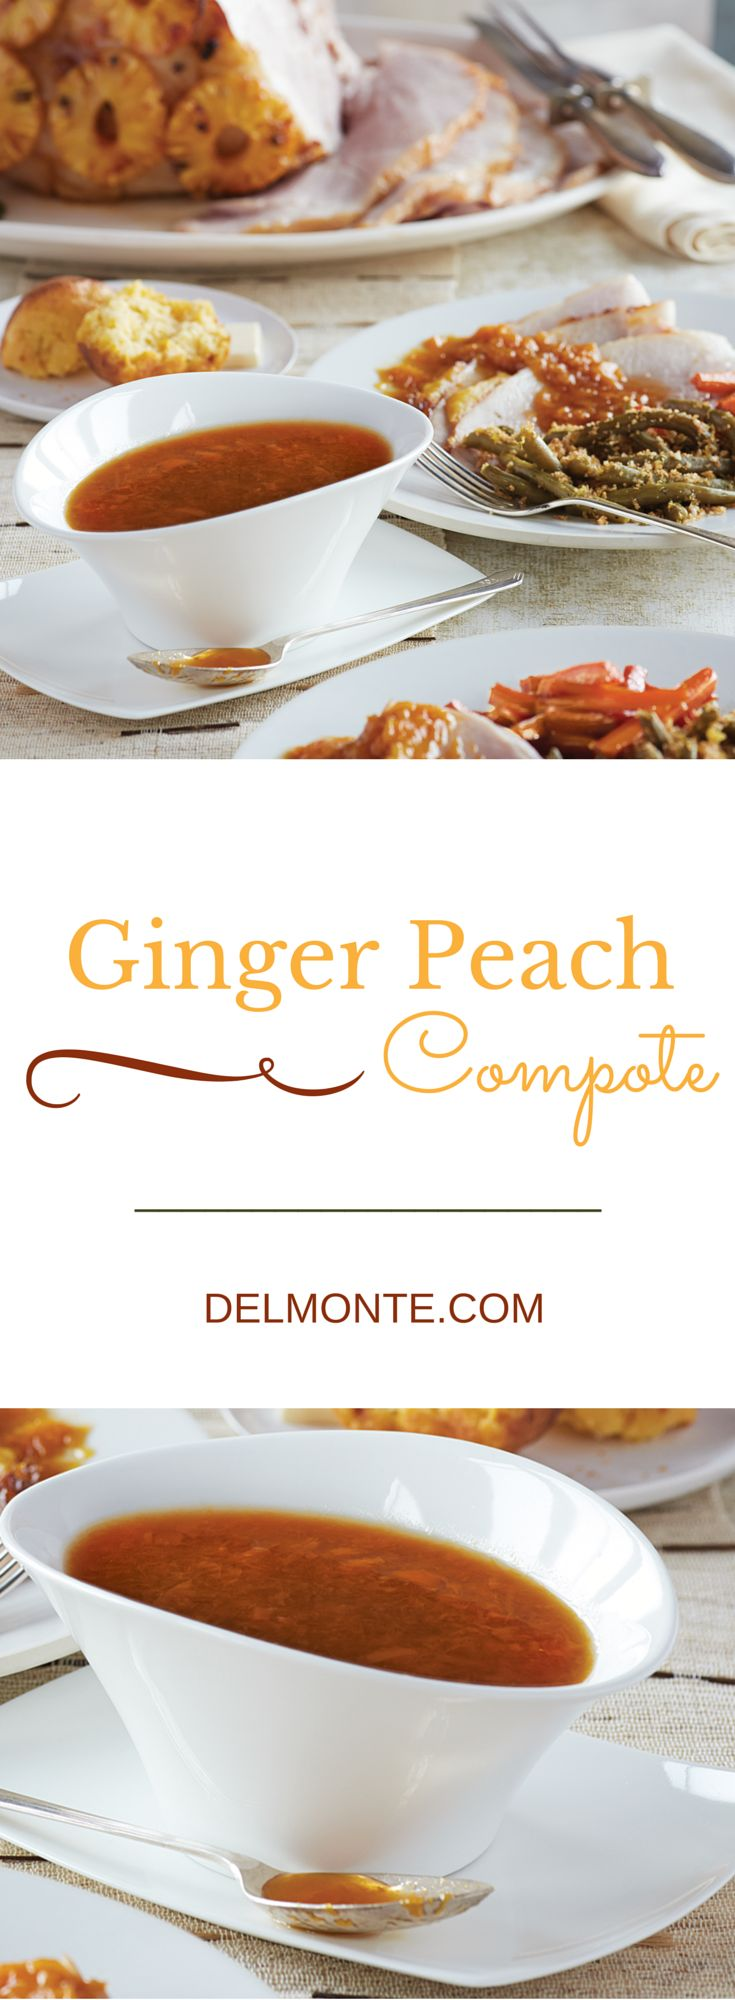 Ginger Peach Compote -  This zesty, sweet fruit sauce pairs perfectly with your holiday ham. With just 4 ingredients (canned peaches, light brown sugar, cider vinegar, fresh ginger) and a quick prep time, you will spend less time in the kitchen and more time with the ones you love. #10MINUTEWOW #DELMONTECONTEST